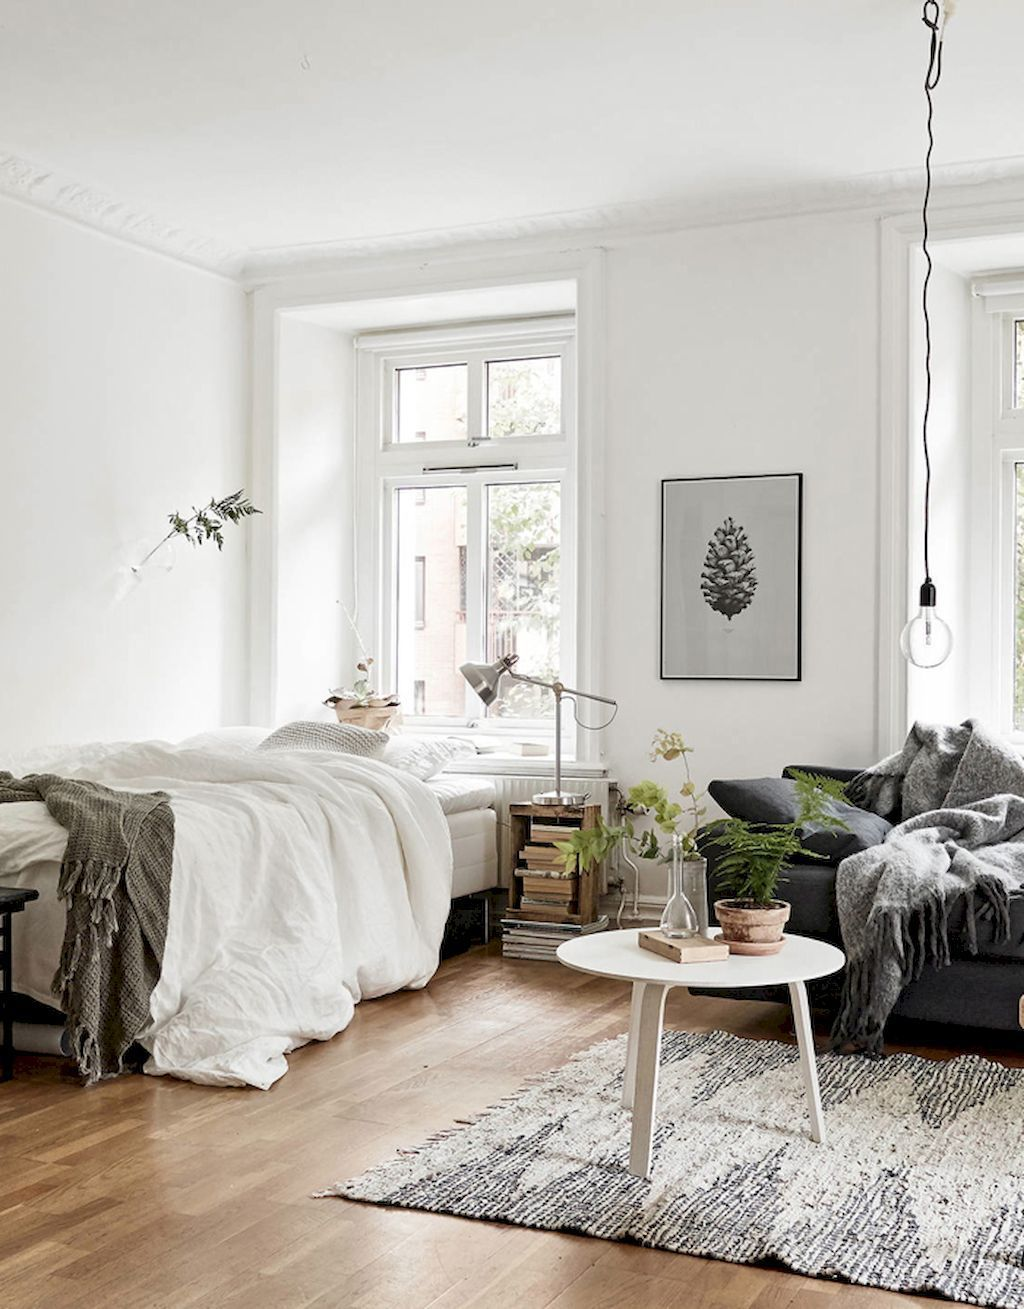 60 cool studio apartment with scandinavian style ideas on a budget ...